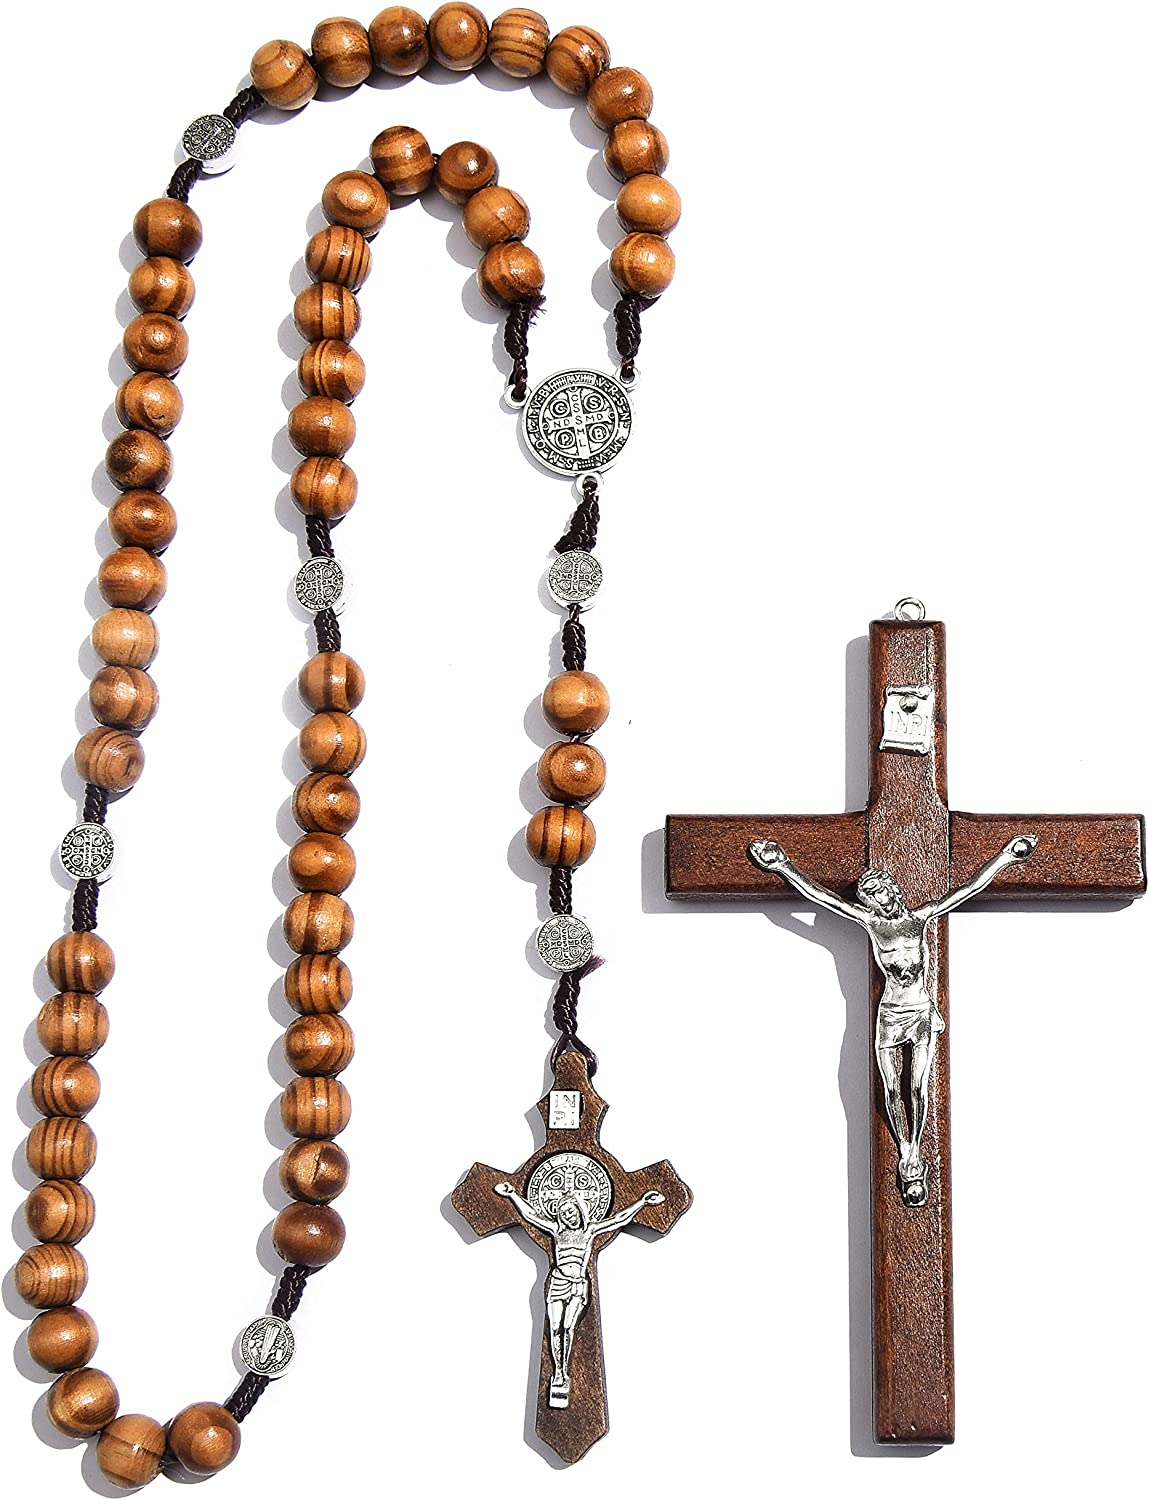 Handmade Wooden Rosary Catholic Rosary Necklace Cross Necklace Religious Jewelry and Presented a 4.6